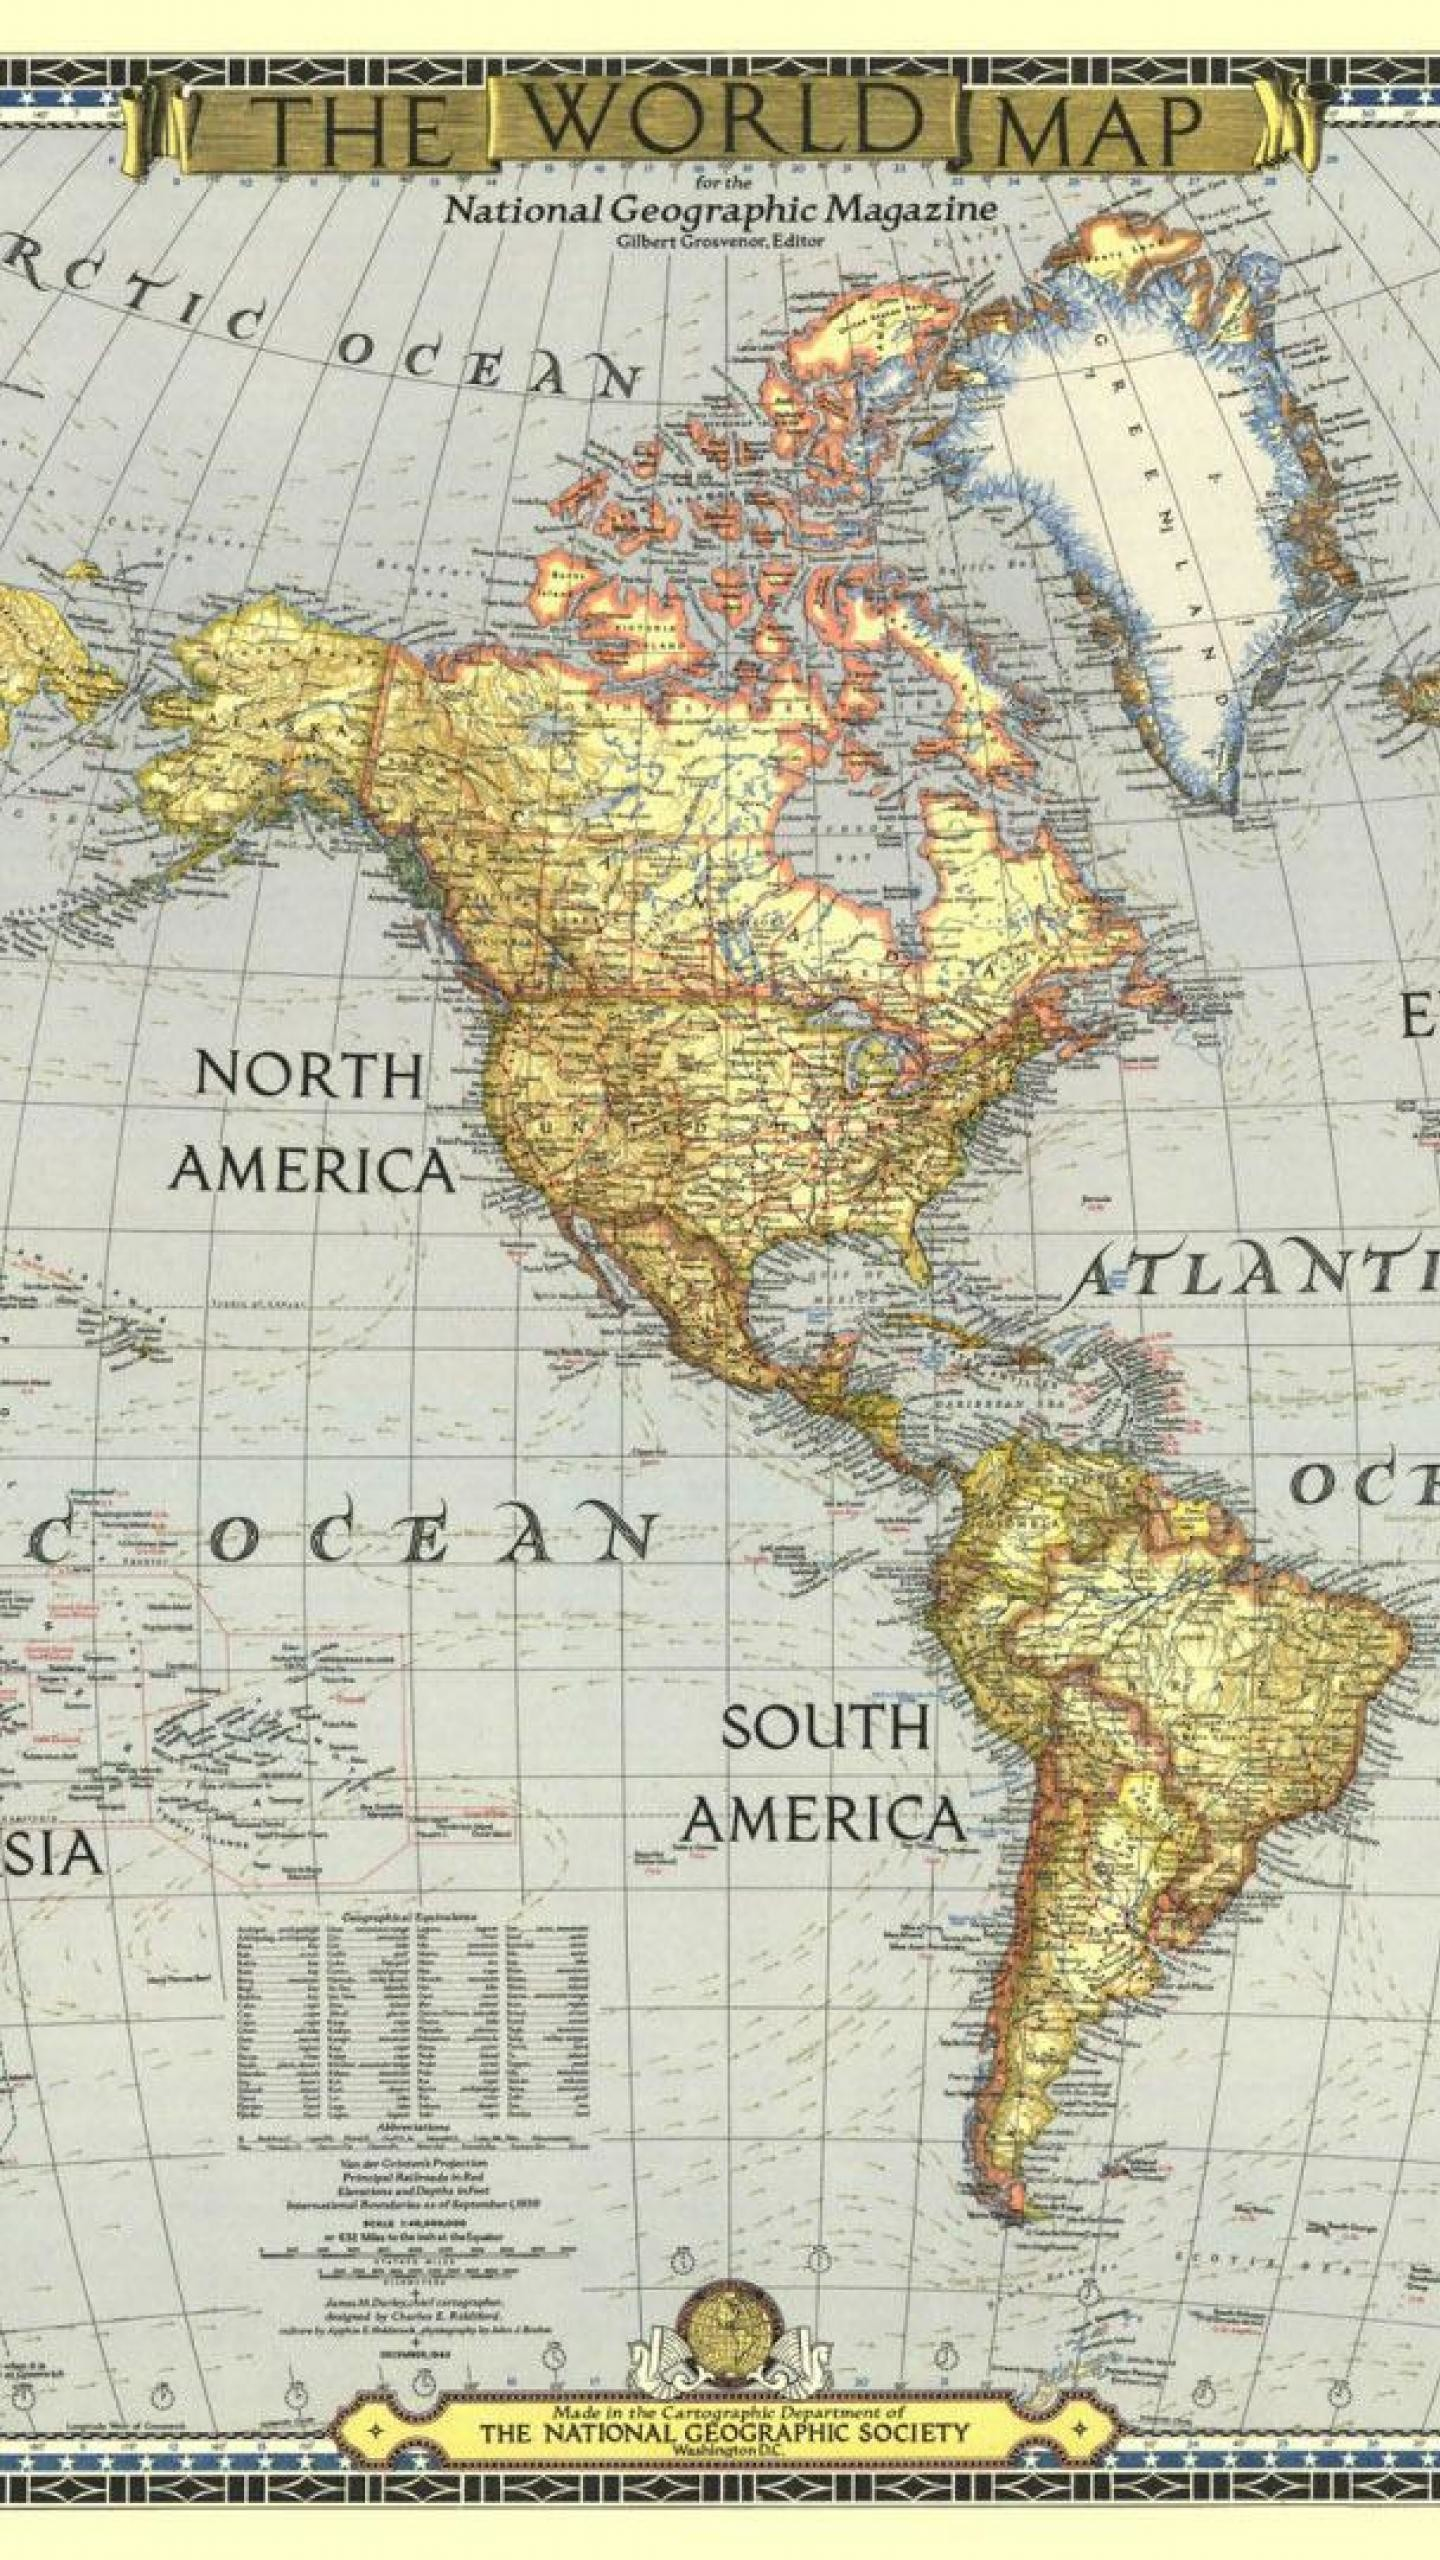 1440x2560 Artistic World Map Hd Wallpapers Desktop Backgrounds Samsung Galaxy Note 4  5 S6 Edge. home ...